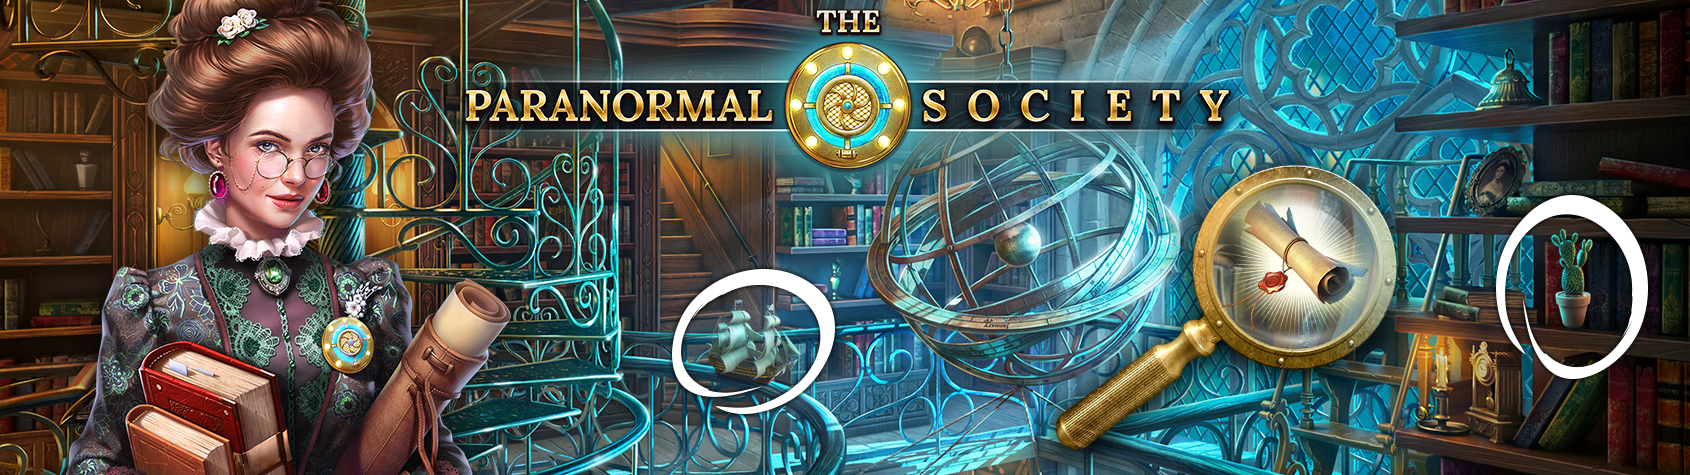 The Paranormal Society™: Hidden Adventure